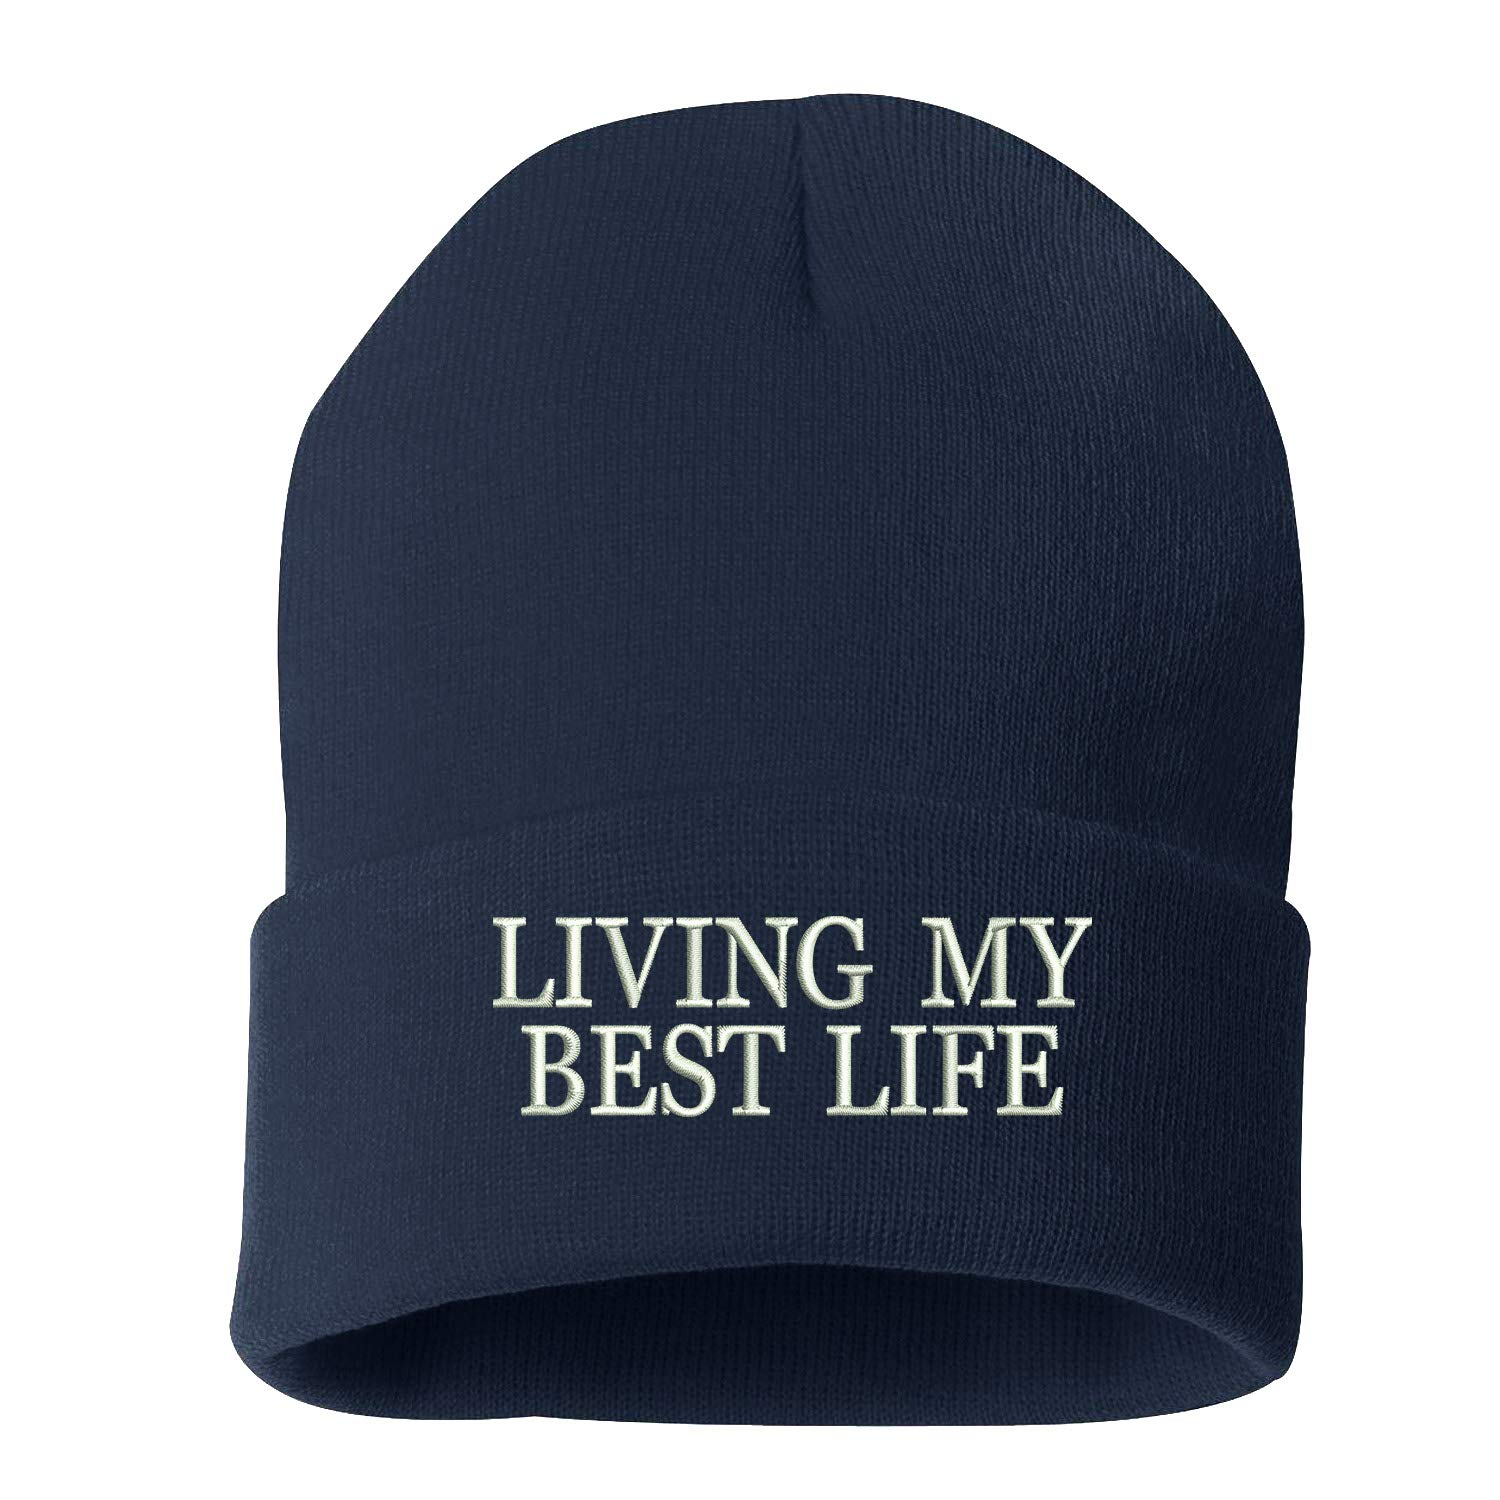 Living My Best Life Embroidered Beanie Cuffed Cap Unisex